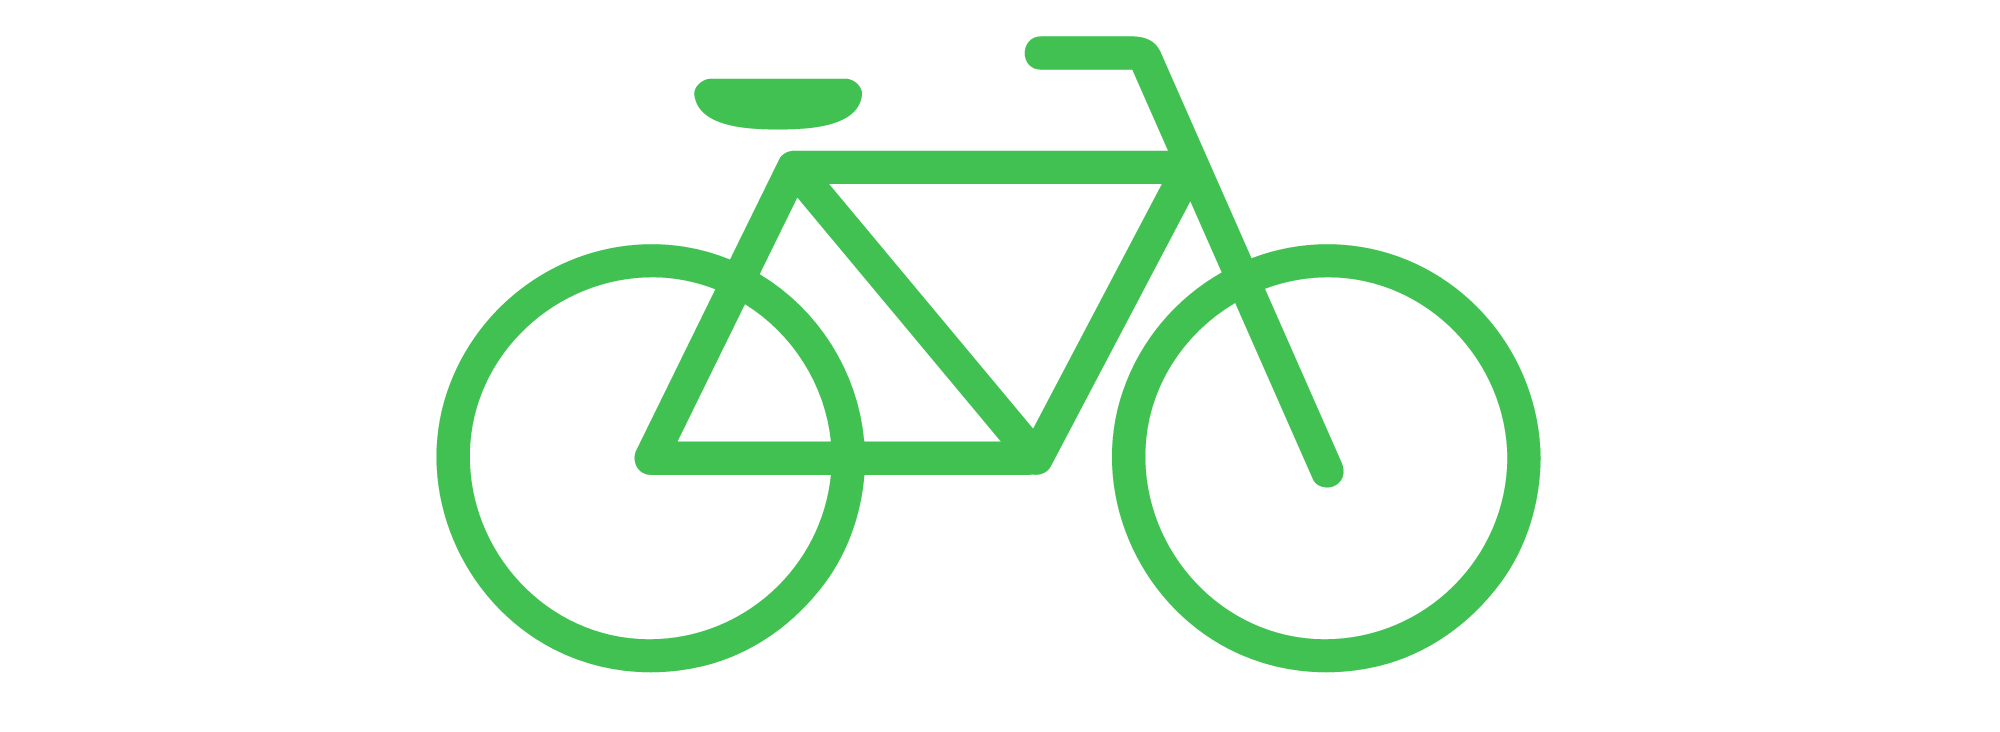 Green bicycle. Clipart bike transparent